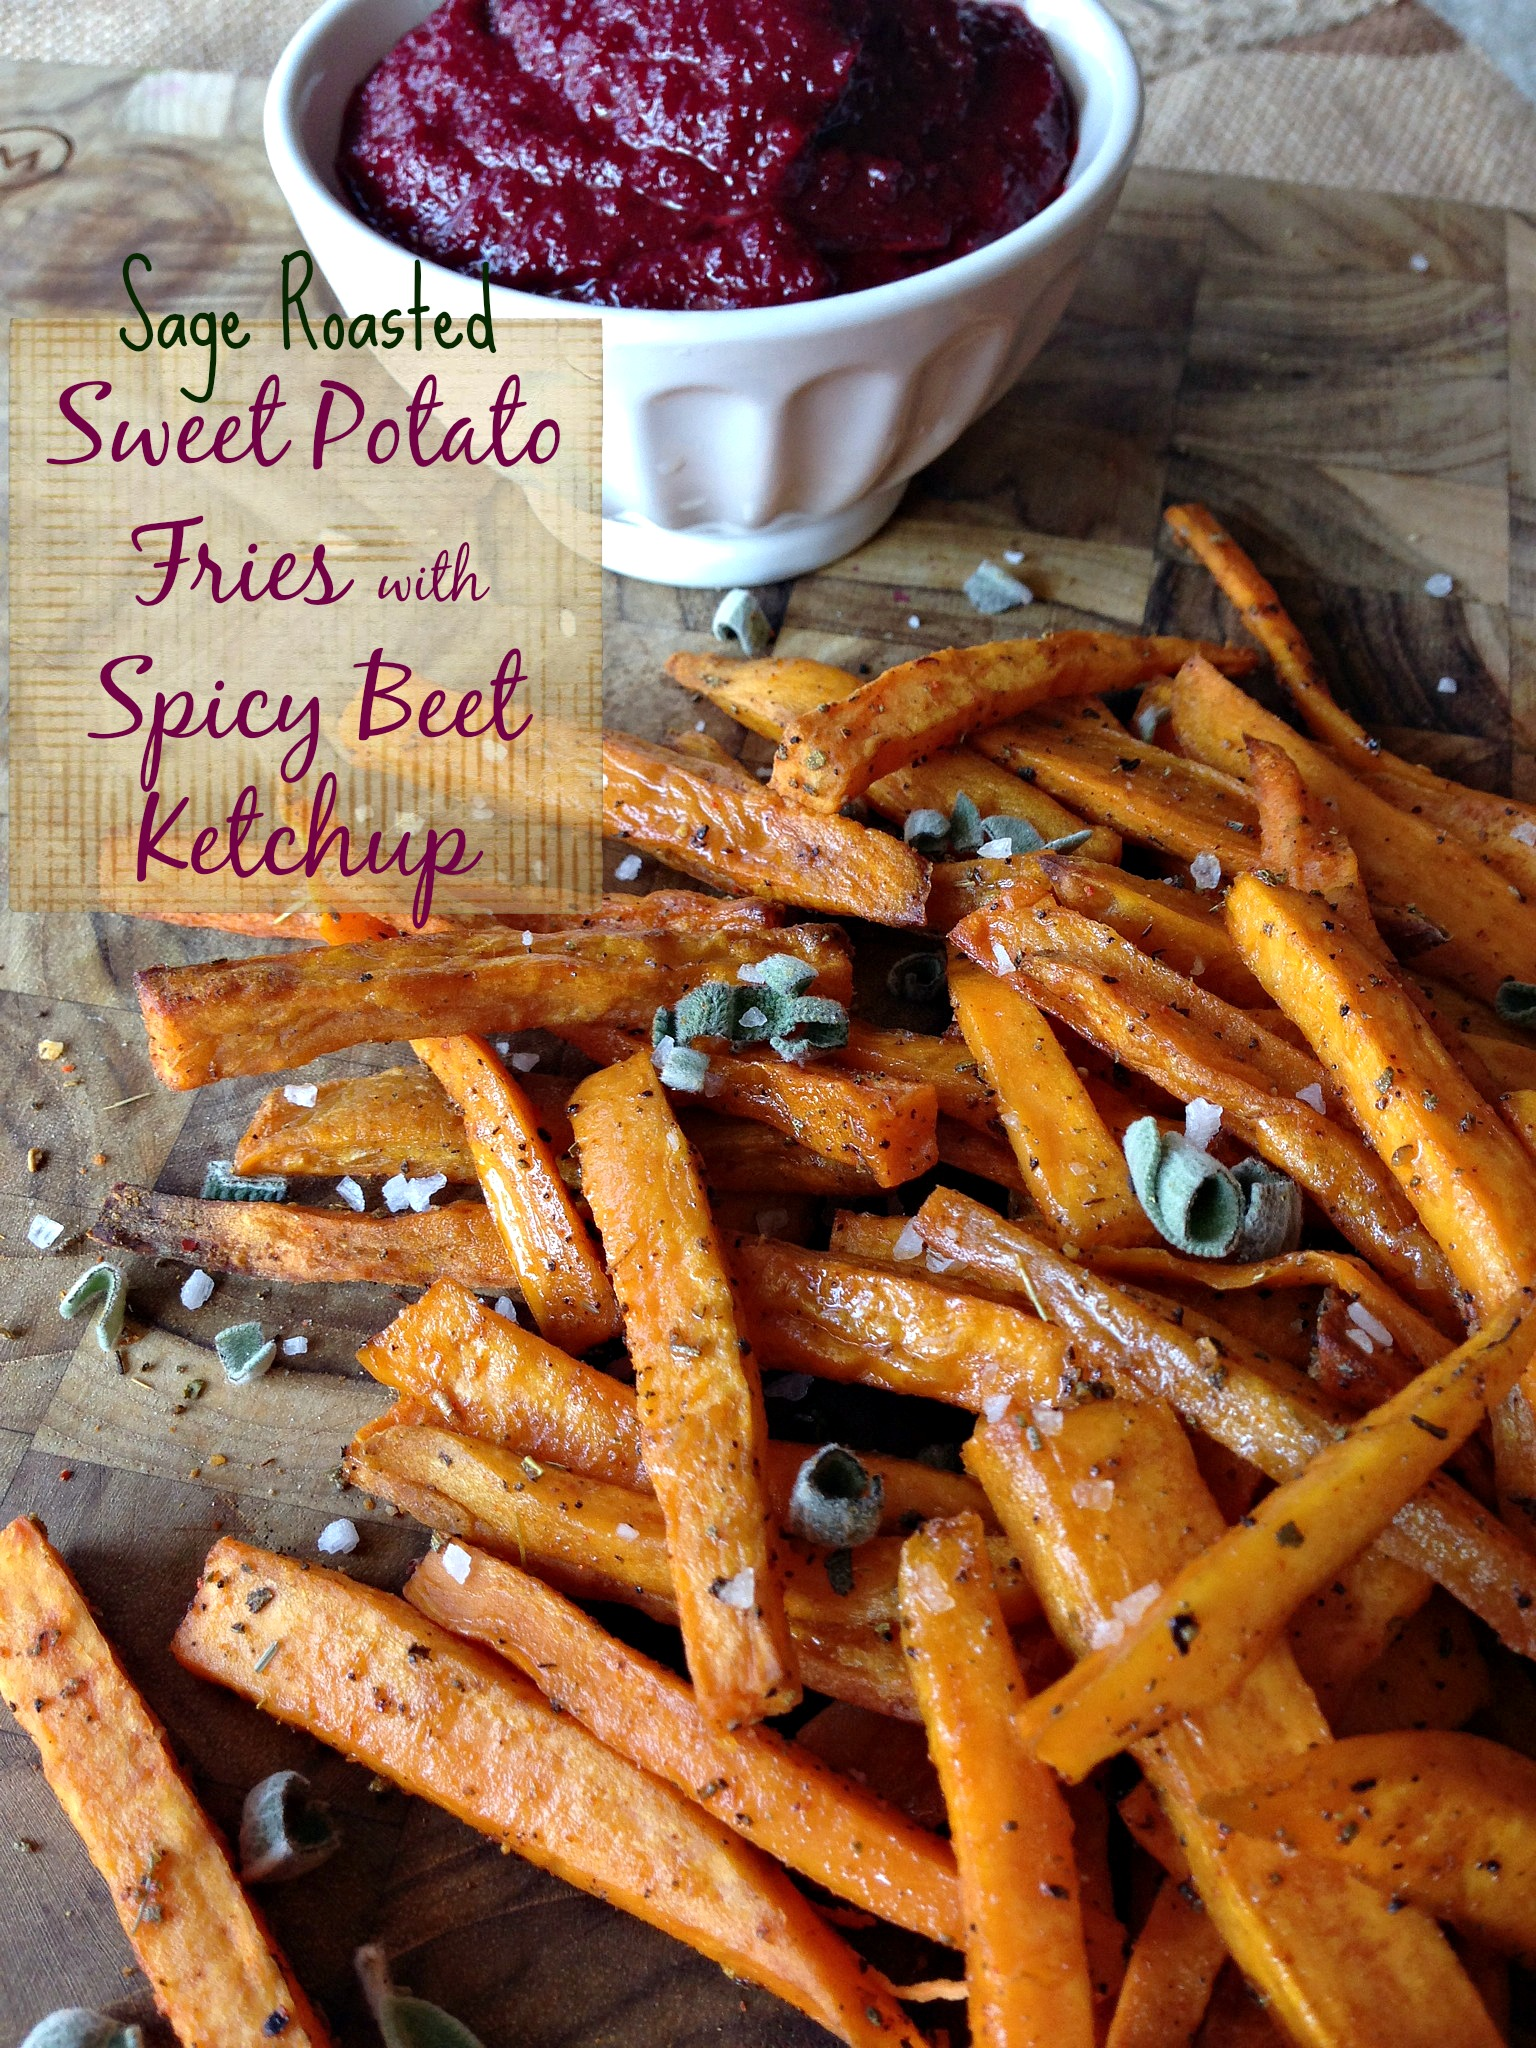 Sage Roasted Sweet Potato Fries with Spicy Beet Ketchup